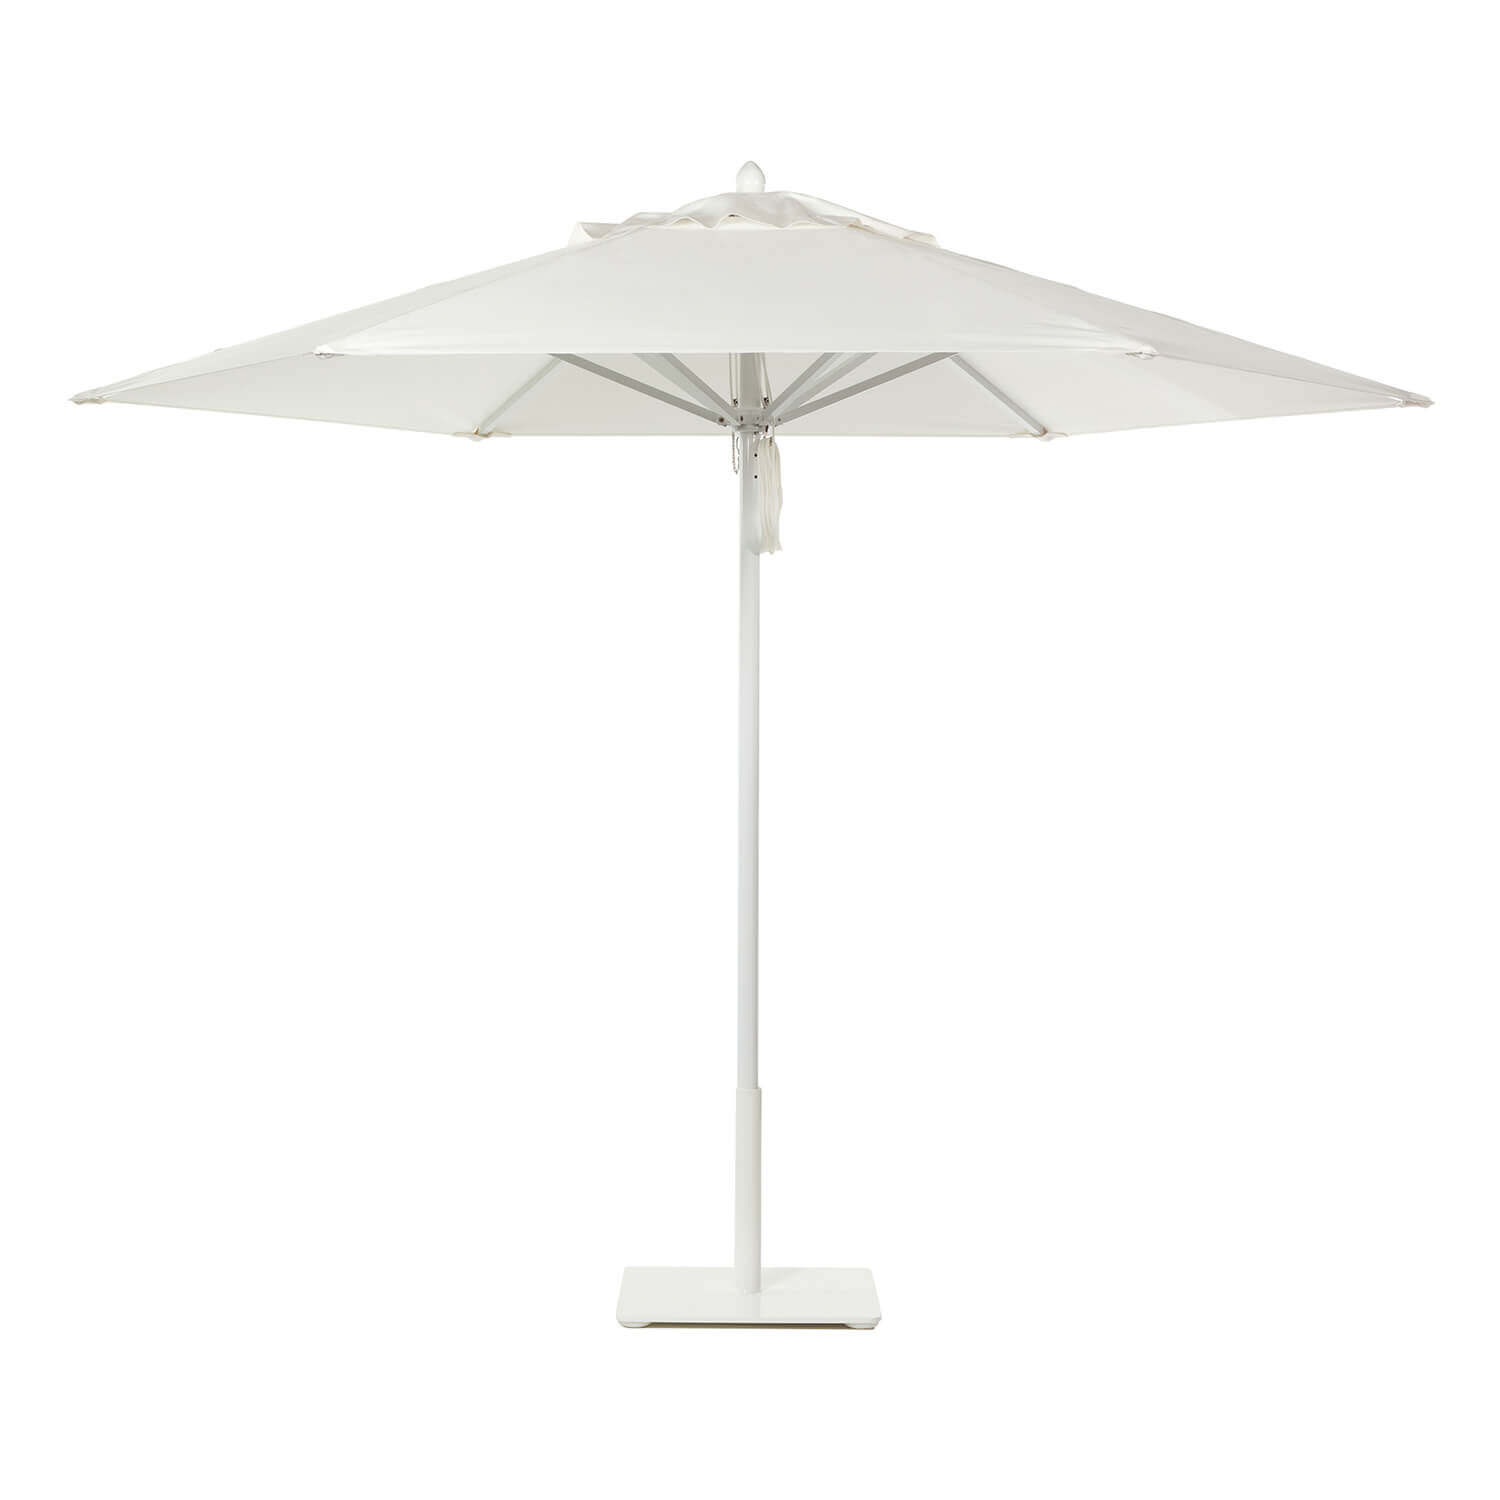 Whitecap Umbrella Image